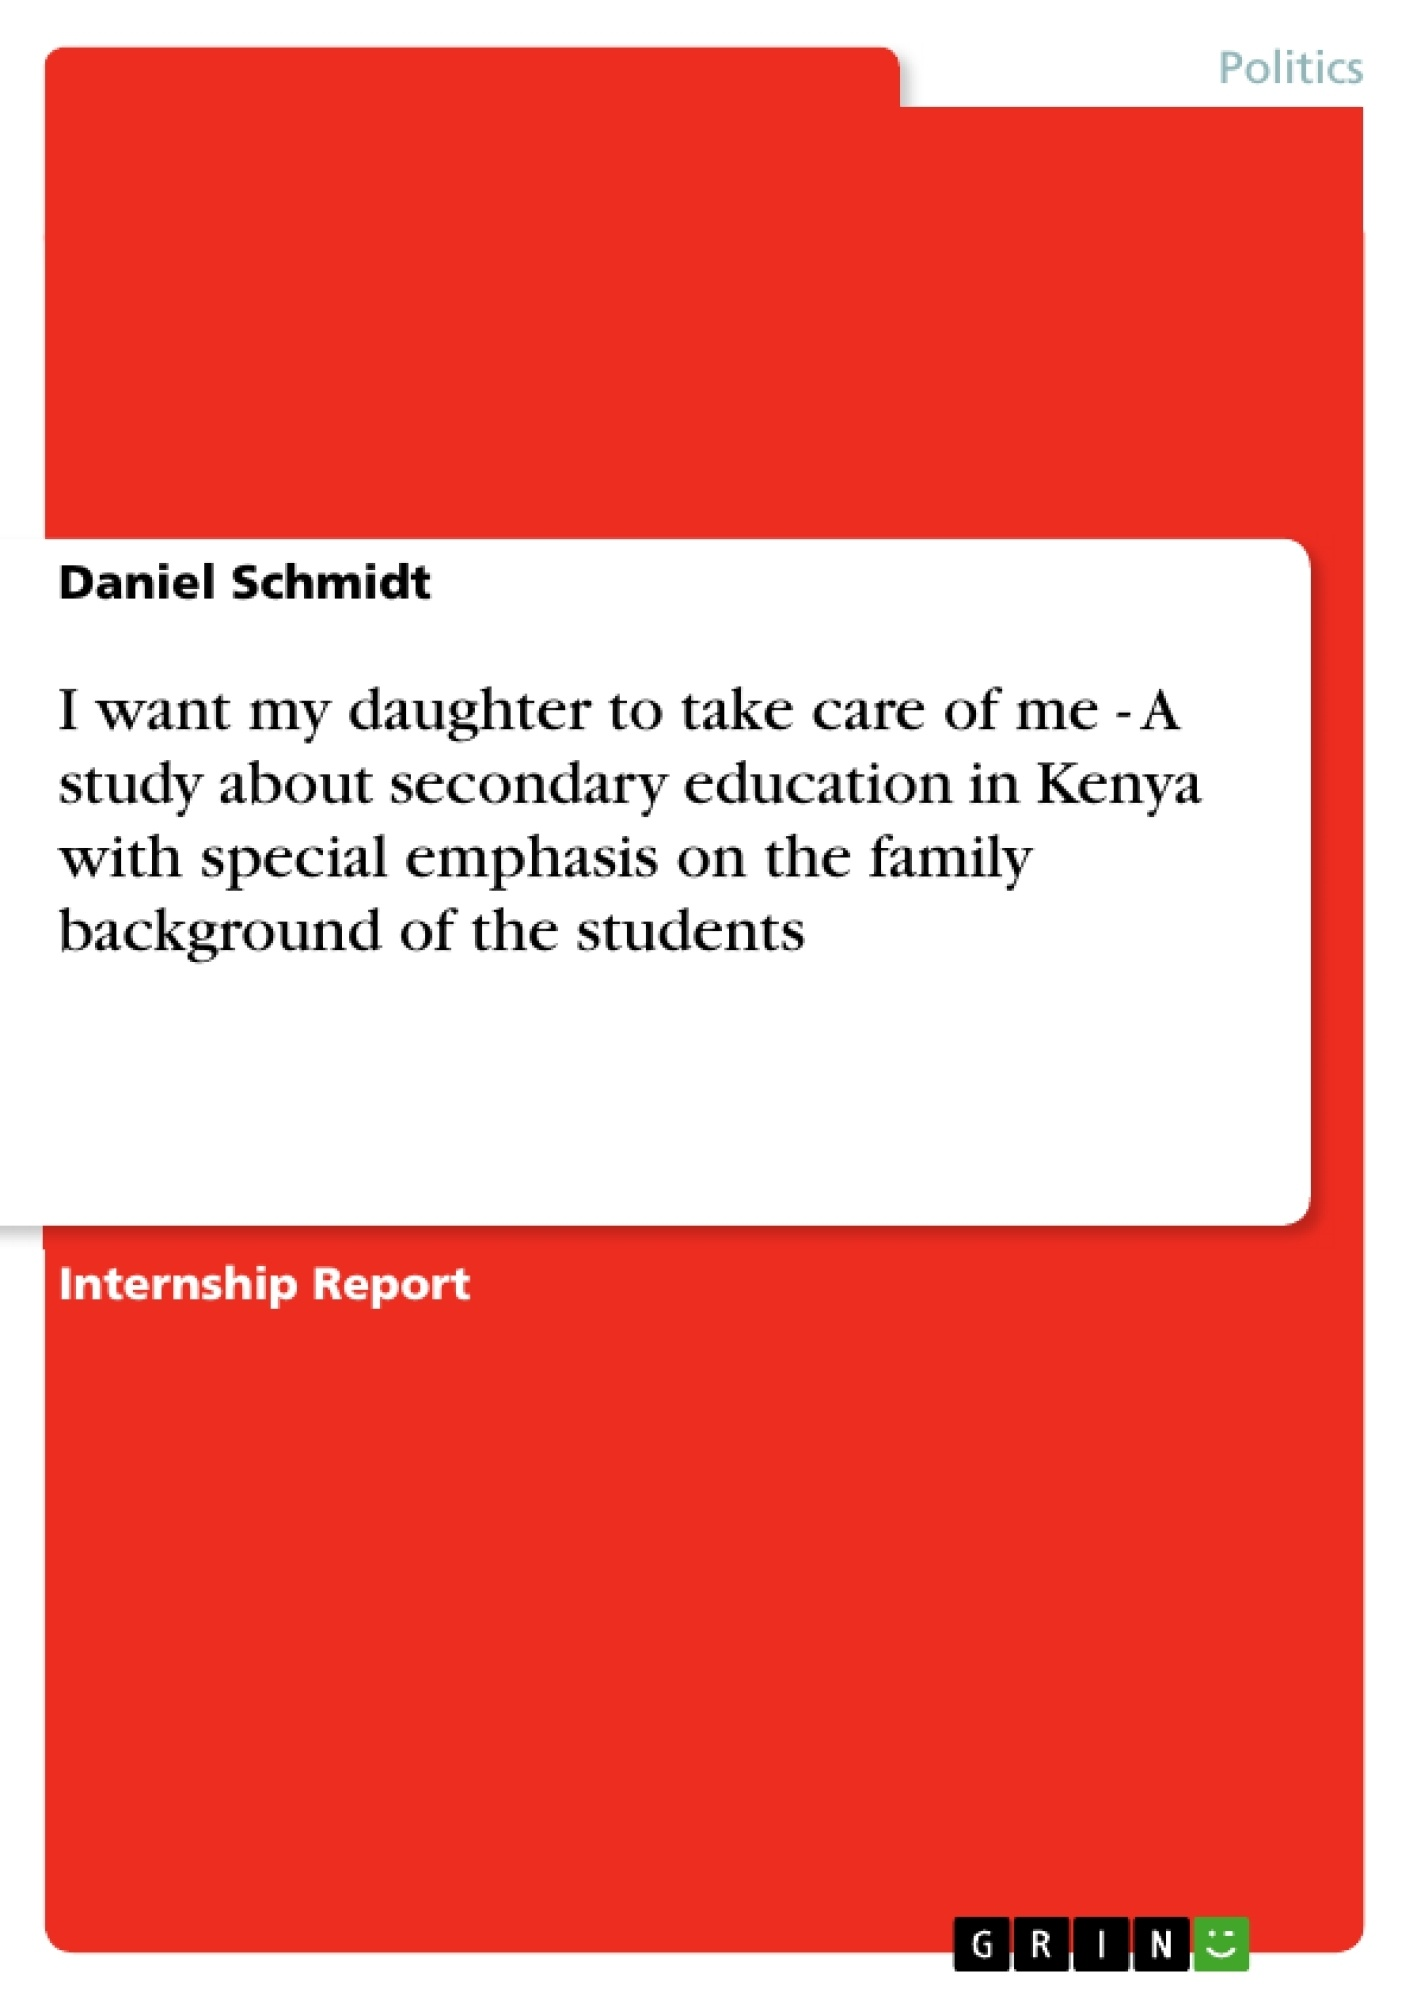 Title: I want my daughter to take care of me -  A study about secondary education in Kenya with special emphasis on the family background of the students